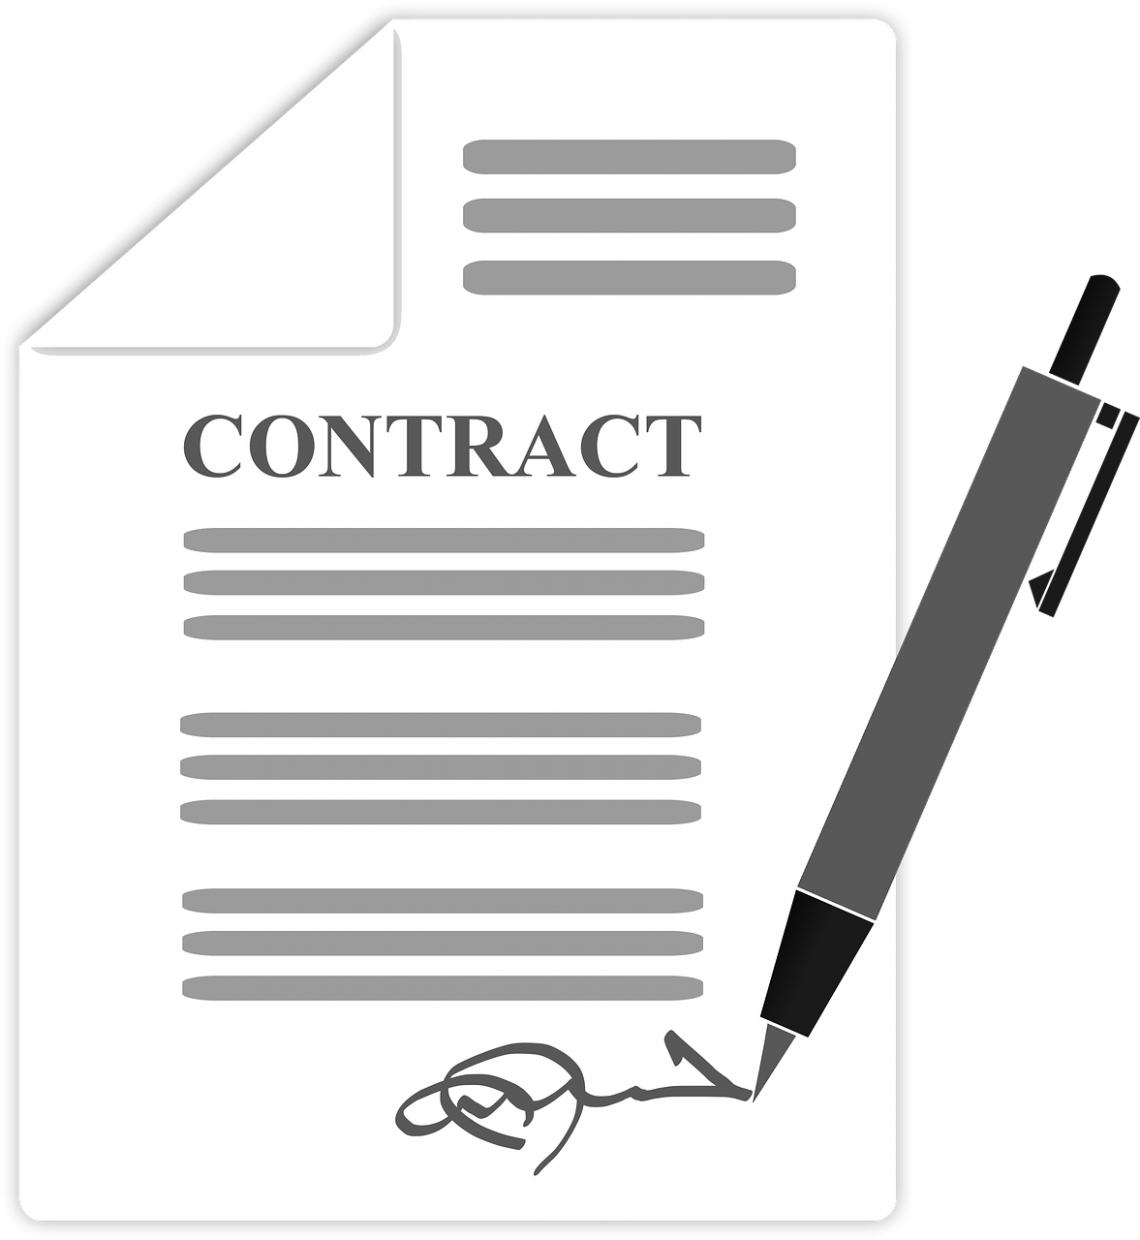 contract-1332817_1280